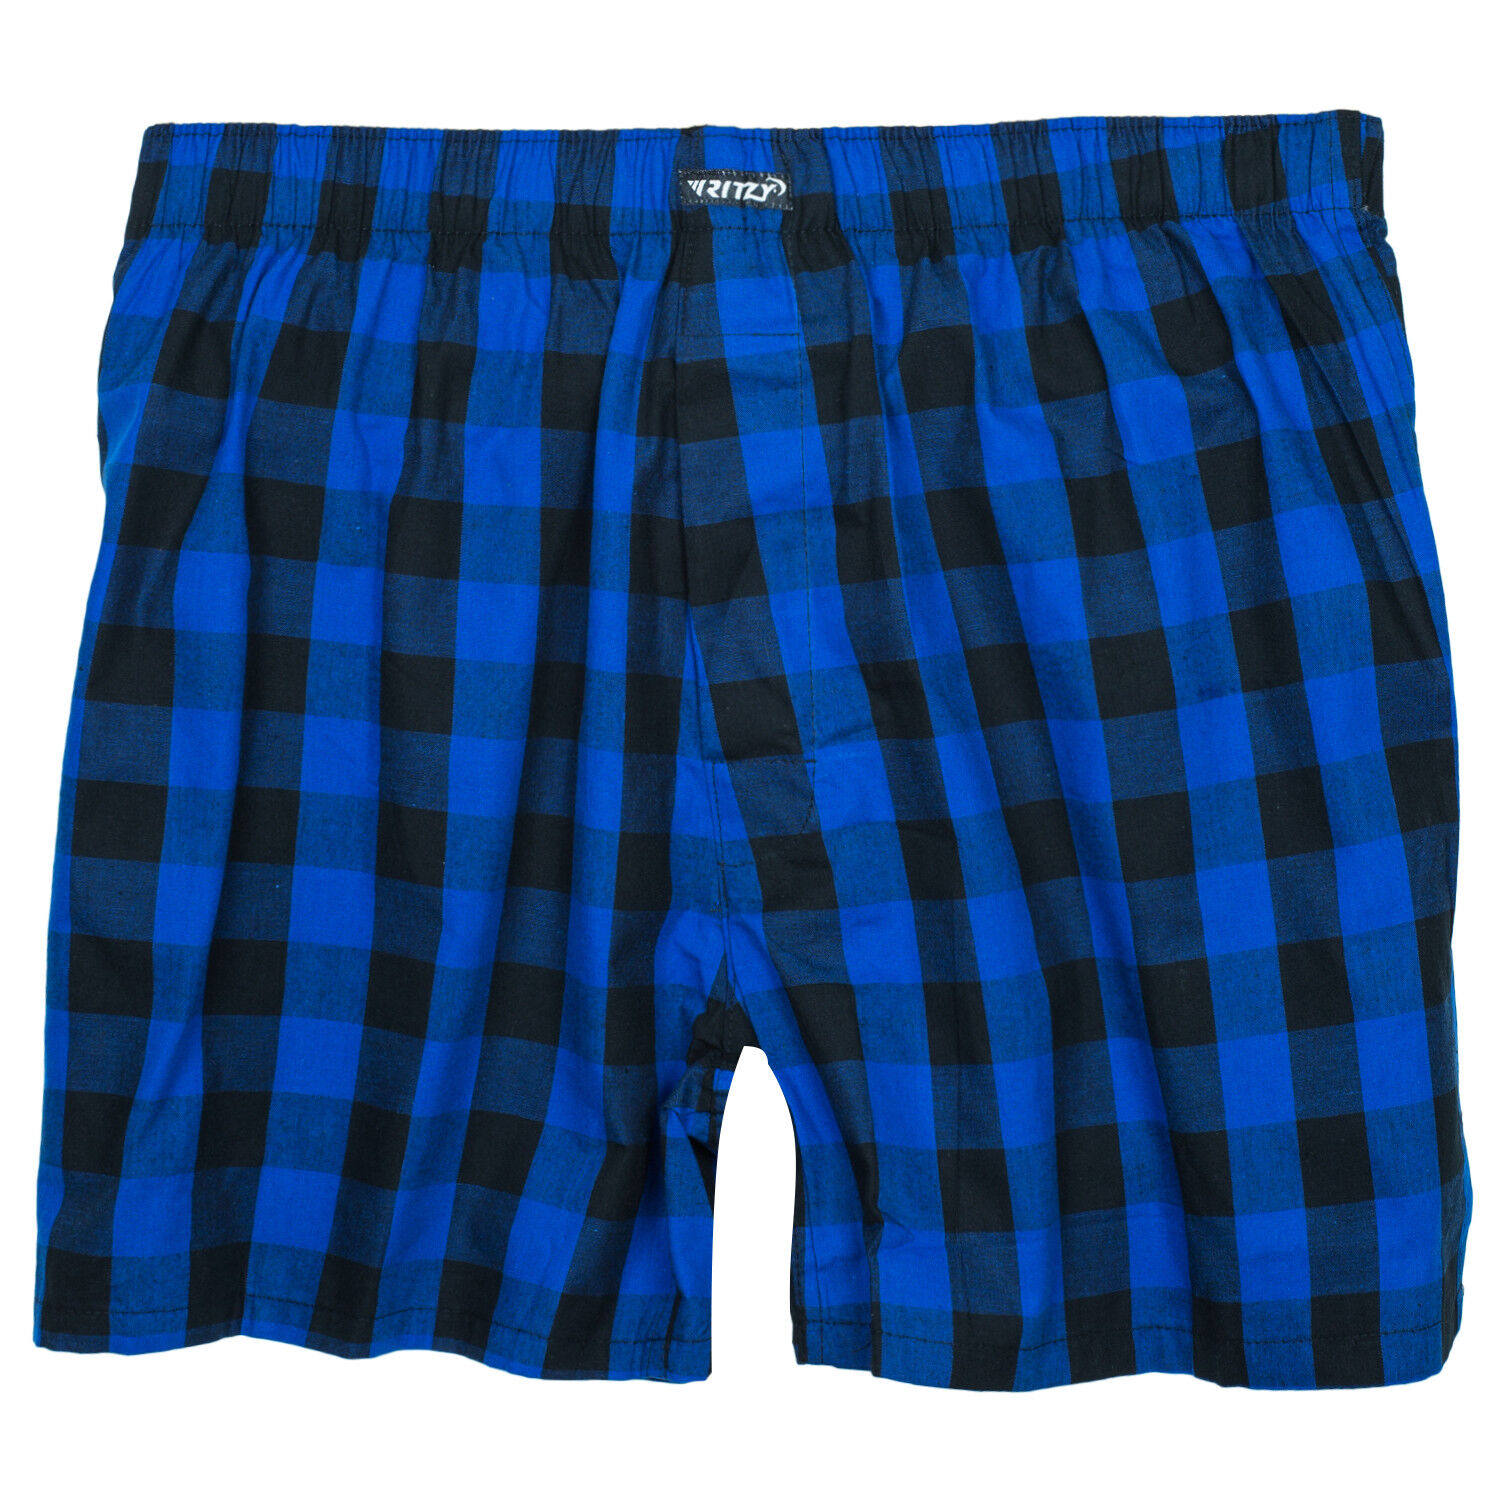 Ritzy Men's Boxer Shorts Underwear 100% Cotton Plaid Yarn Dyed Woven – 3 Pack Clothing, Shoes & Accessories